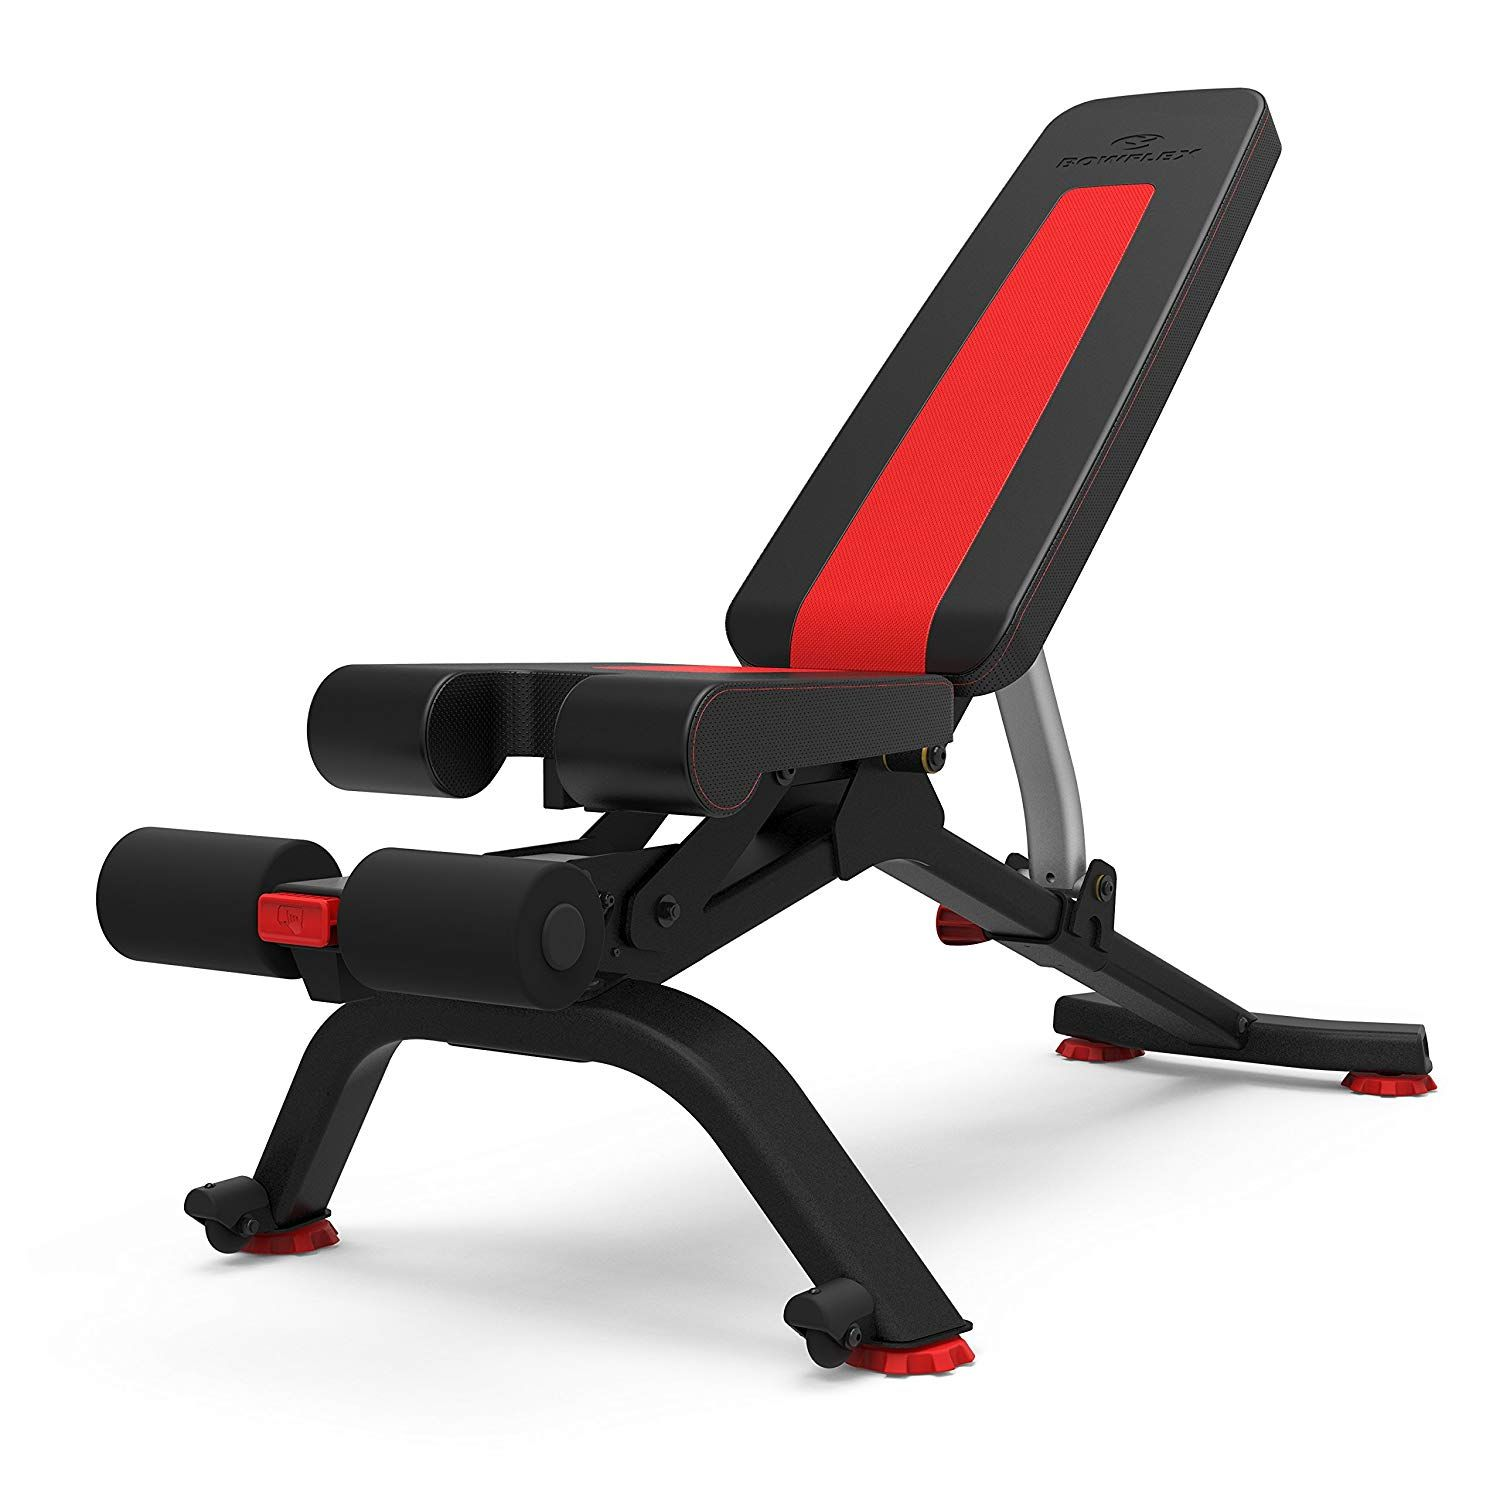 Weight Benches By Bowflex Rate 4 3 5 The Bowflex 5 1s Stowable Bench Is Our Top Of The Line Weight Bench Weight Benches Adjustable Weight Bench Bowflex